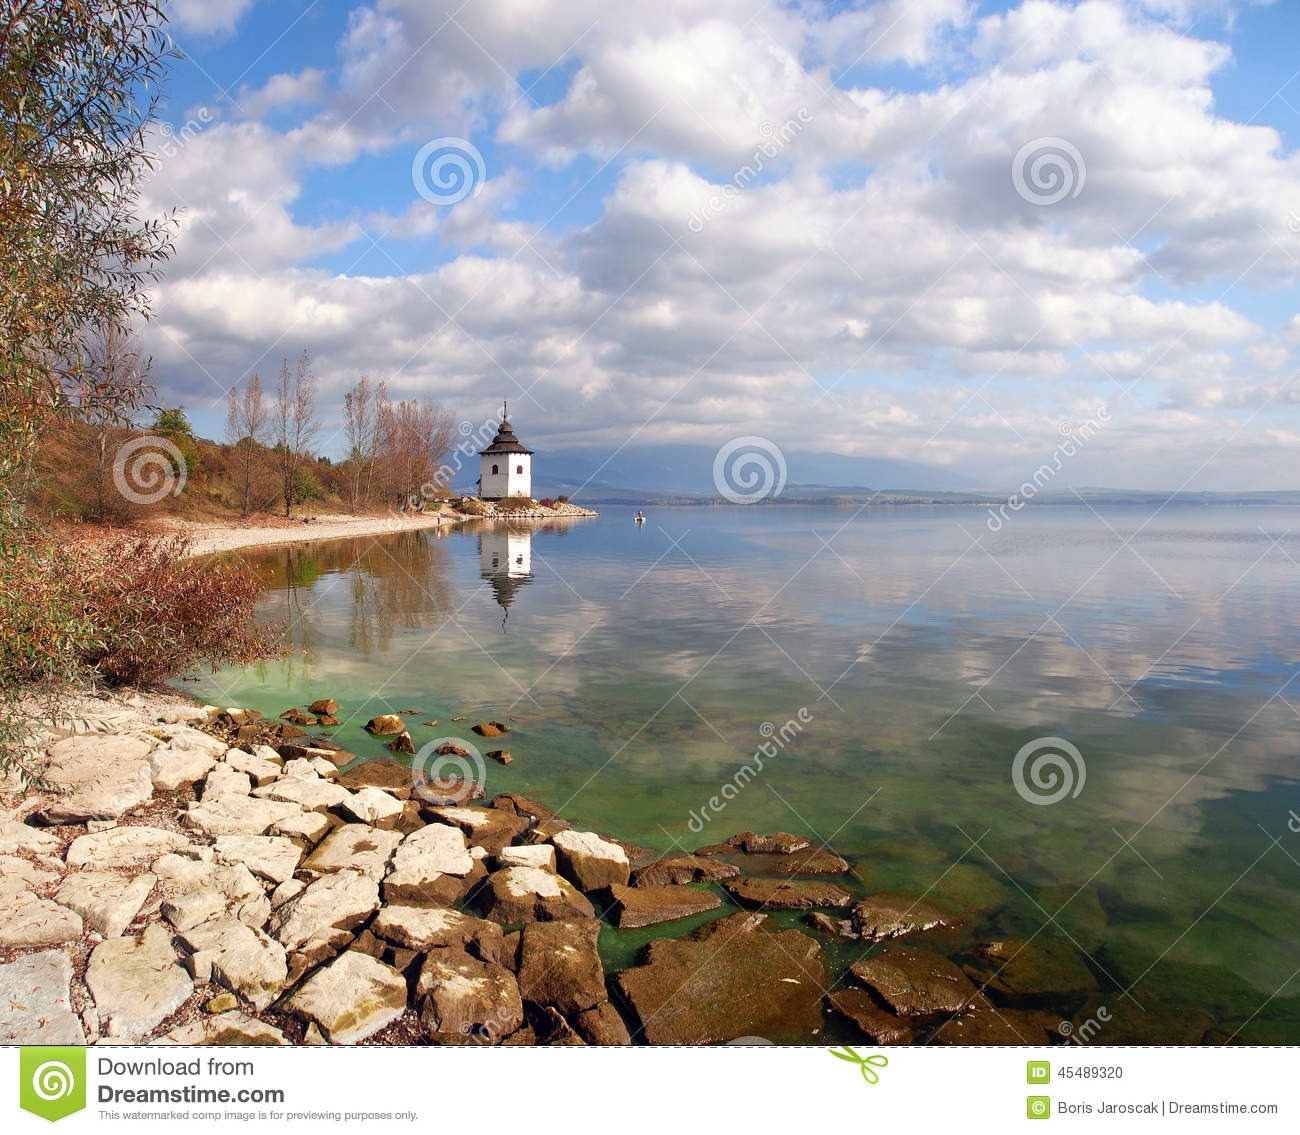 Autumn shore of the Liptovska Mara lake, Slovakia